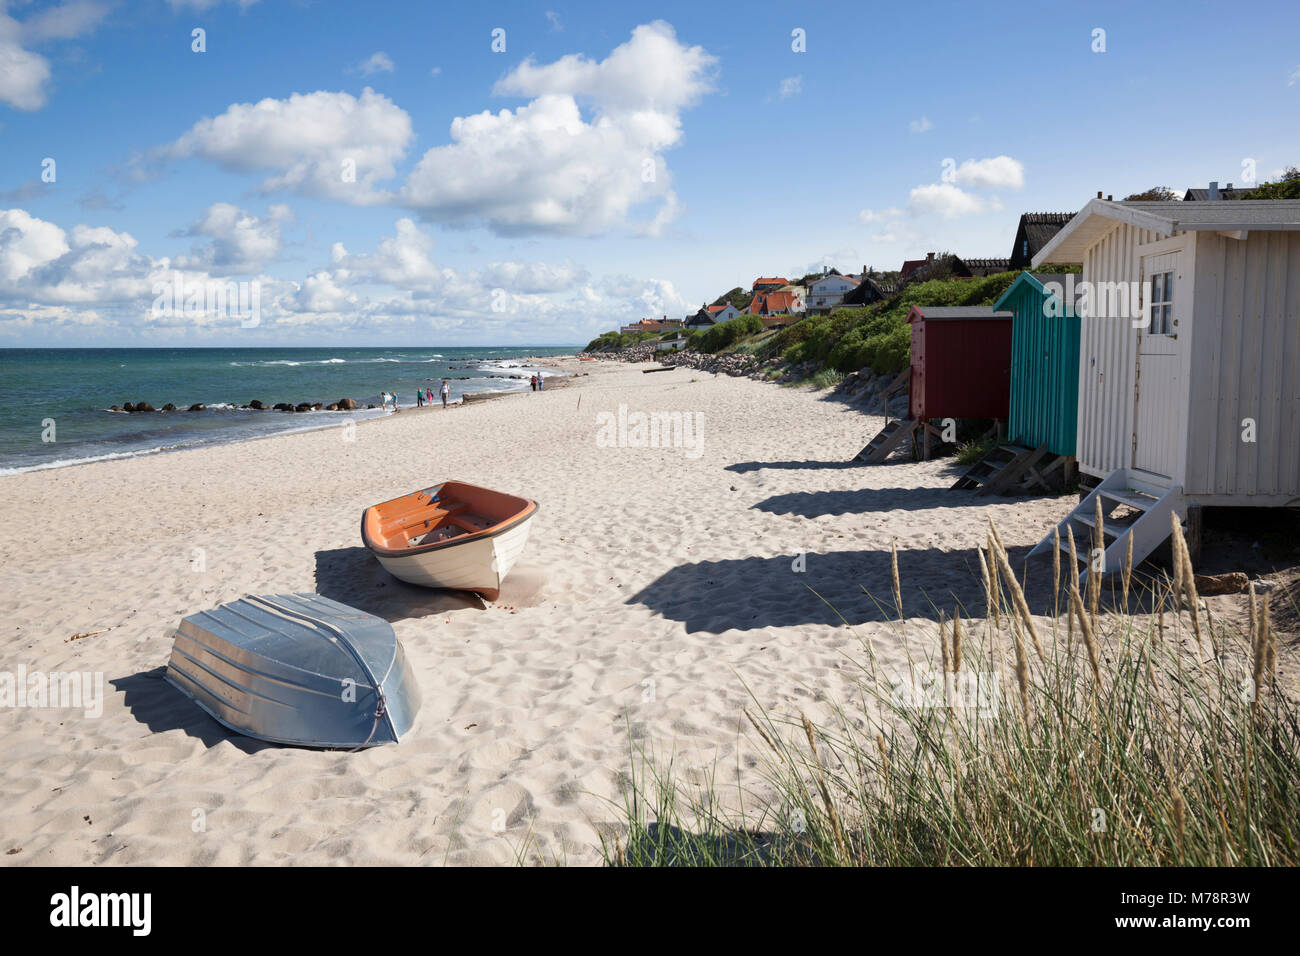 Boats and beach huts on white sand beach with town behind, Tisvilde, Kattegat Coast, Zealand, Denmark, Scandinavia, - Stock Image